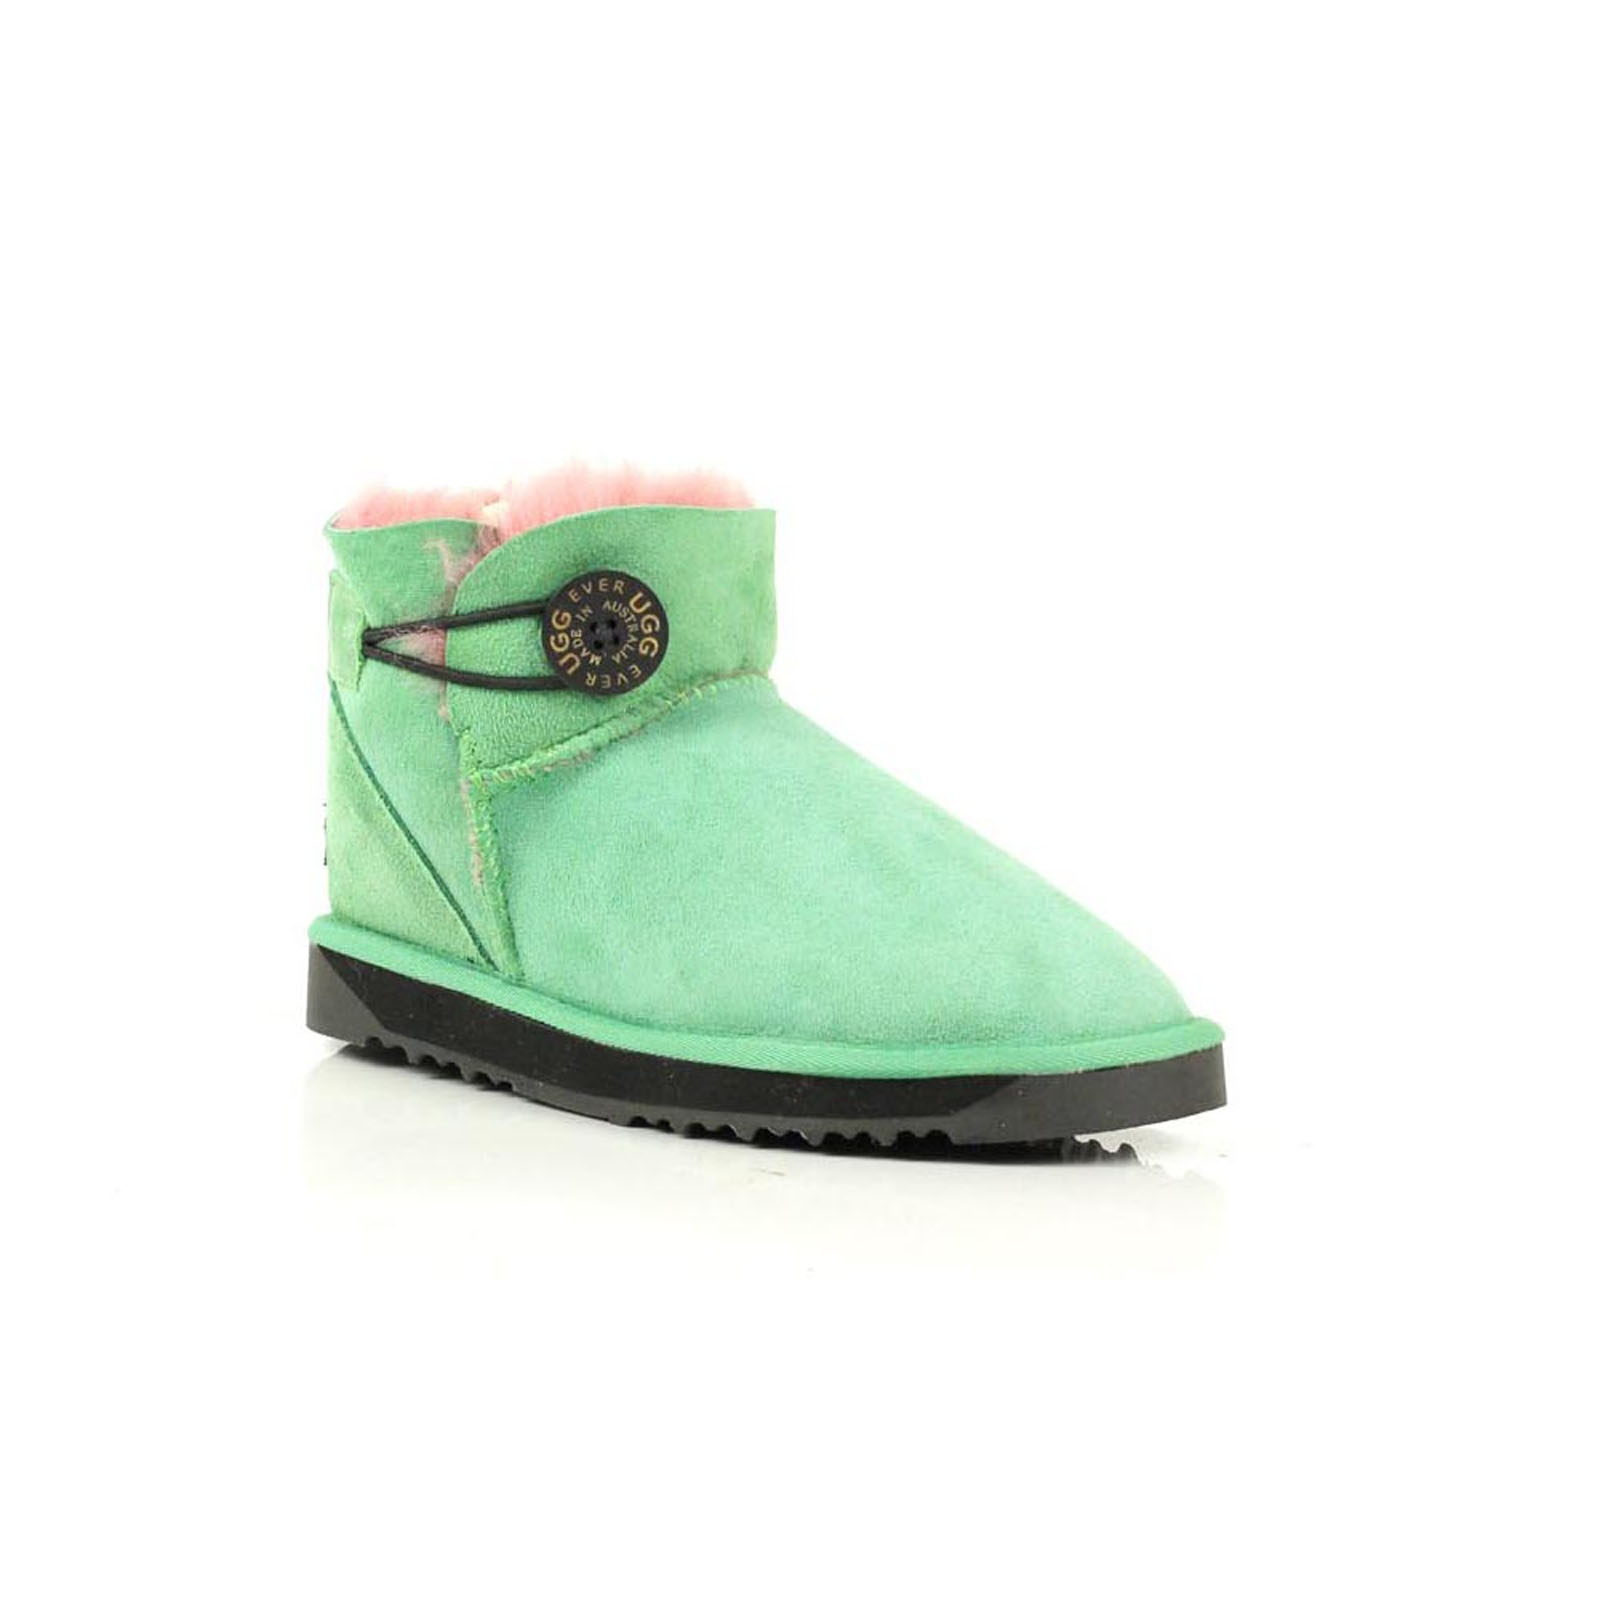 Details about Ugg Boots 100% Sheepskin Mini Button Rubber Soles Ladies Green Size 35 39 EU